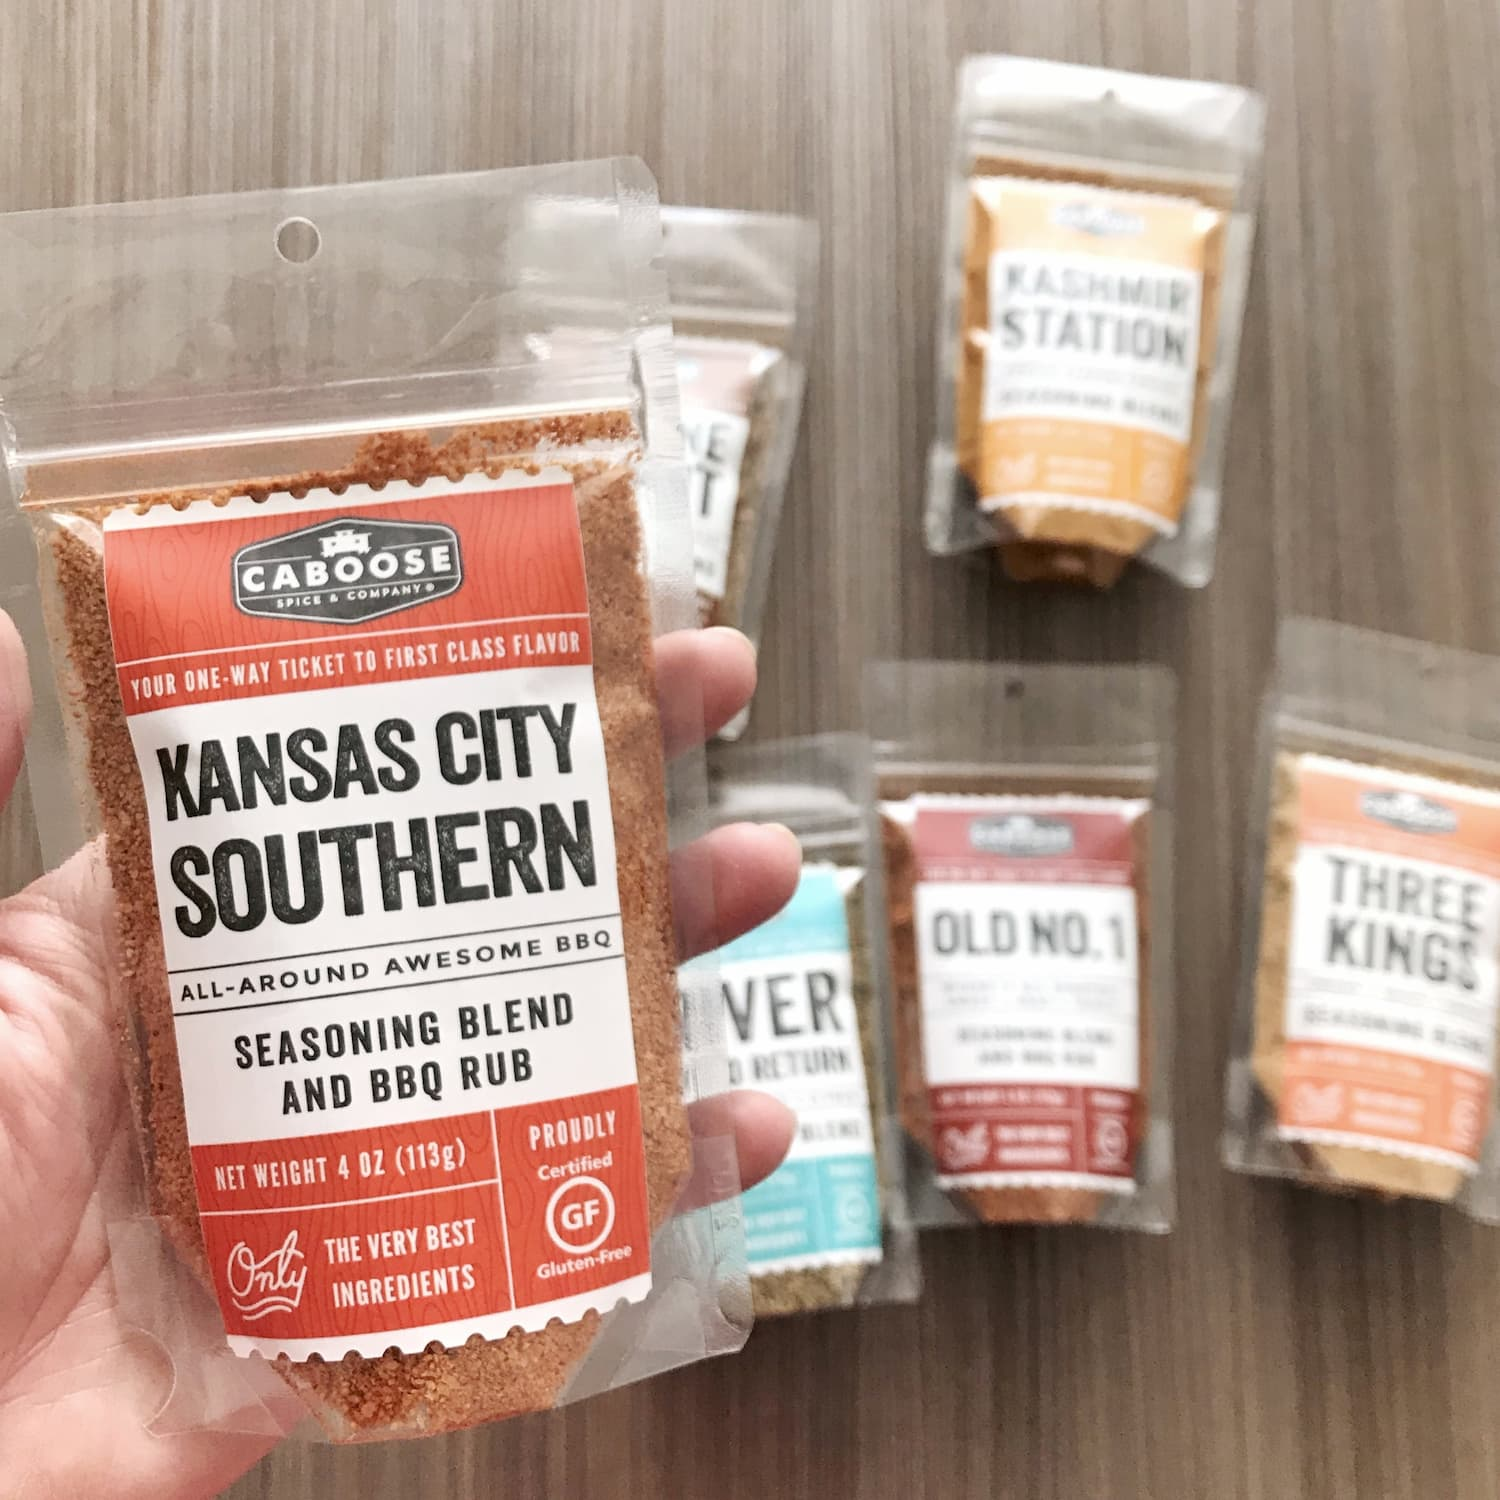 Kansas City Southern Rub 4 oz pouch in hand size reference.jpg